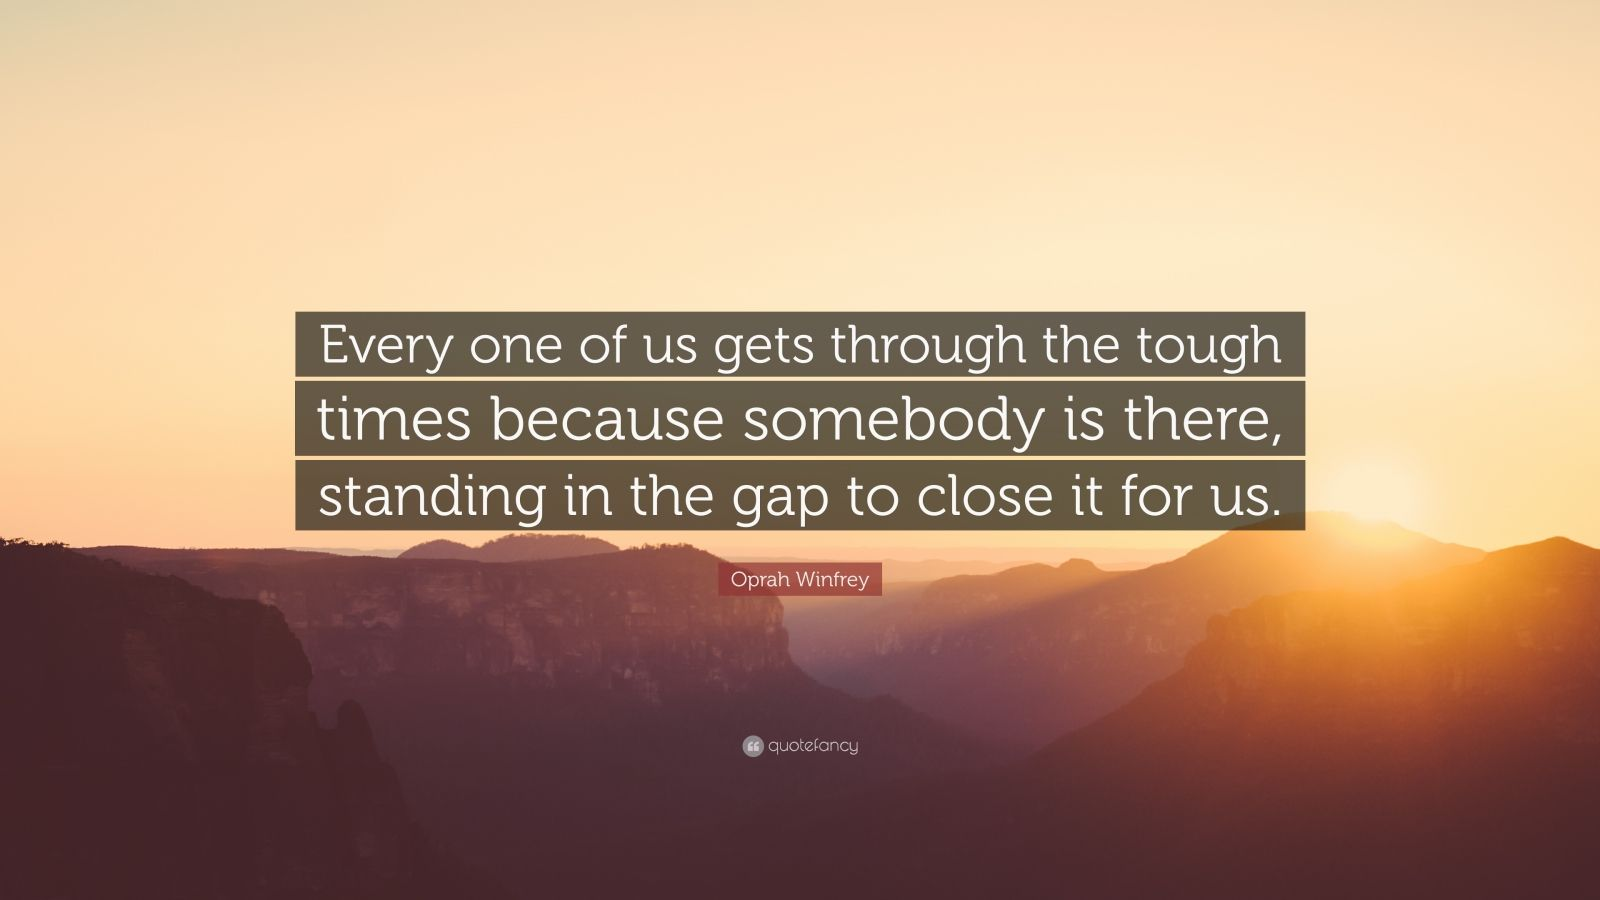 """Oprah Winfrey Quote: """"Every one of us gets through the tough times because somebody is there, standing in the gap to close it for us."""""""